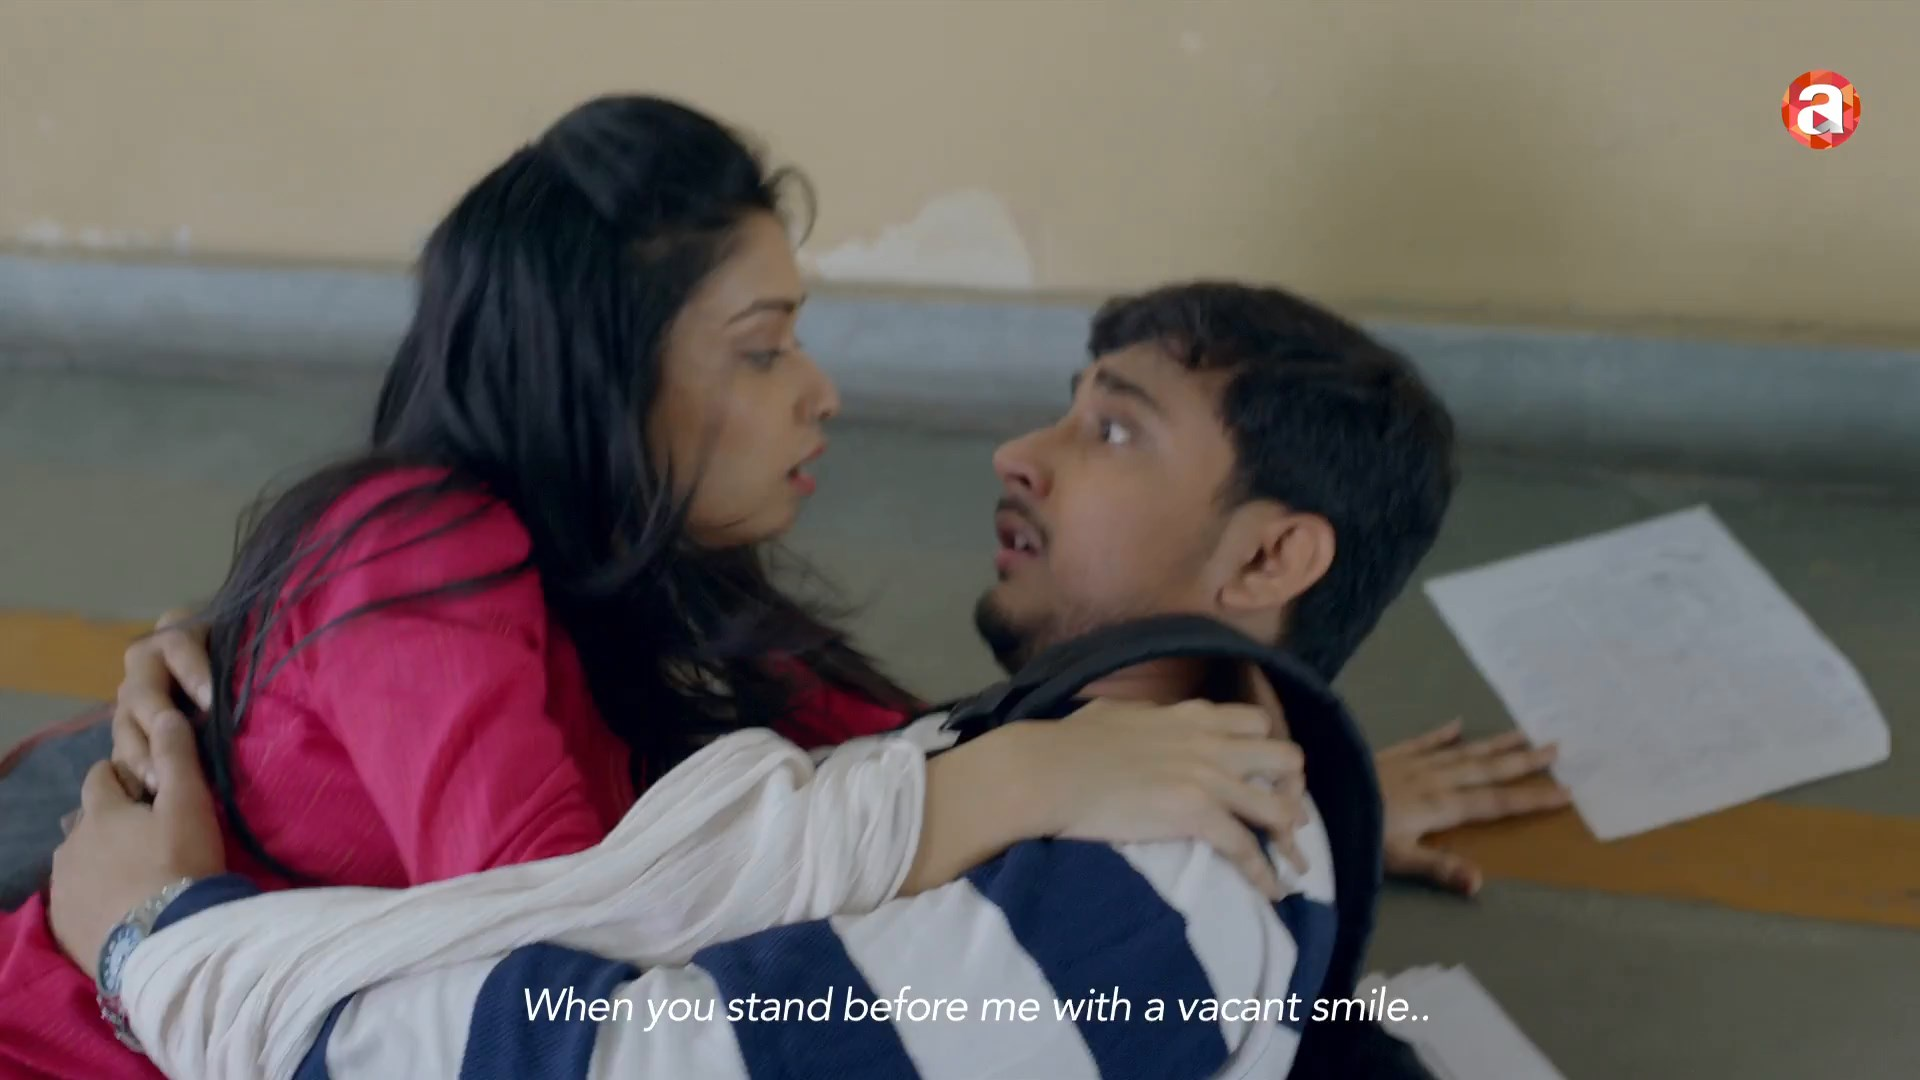 VMS01 18 - 18+ Virgin Mohito 2018 S01 Bangali Addatimes Originals Complete Web Series 480p HDRip 400MB x264 AAC